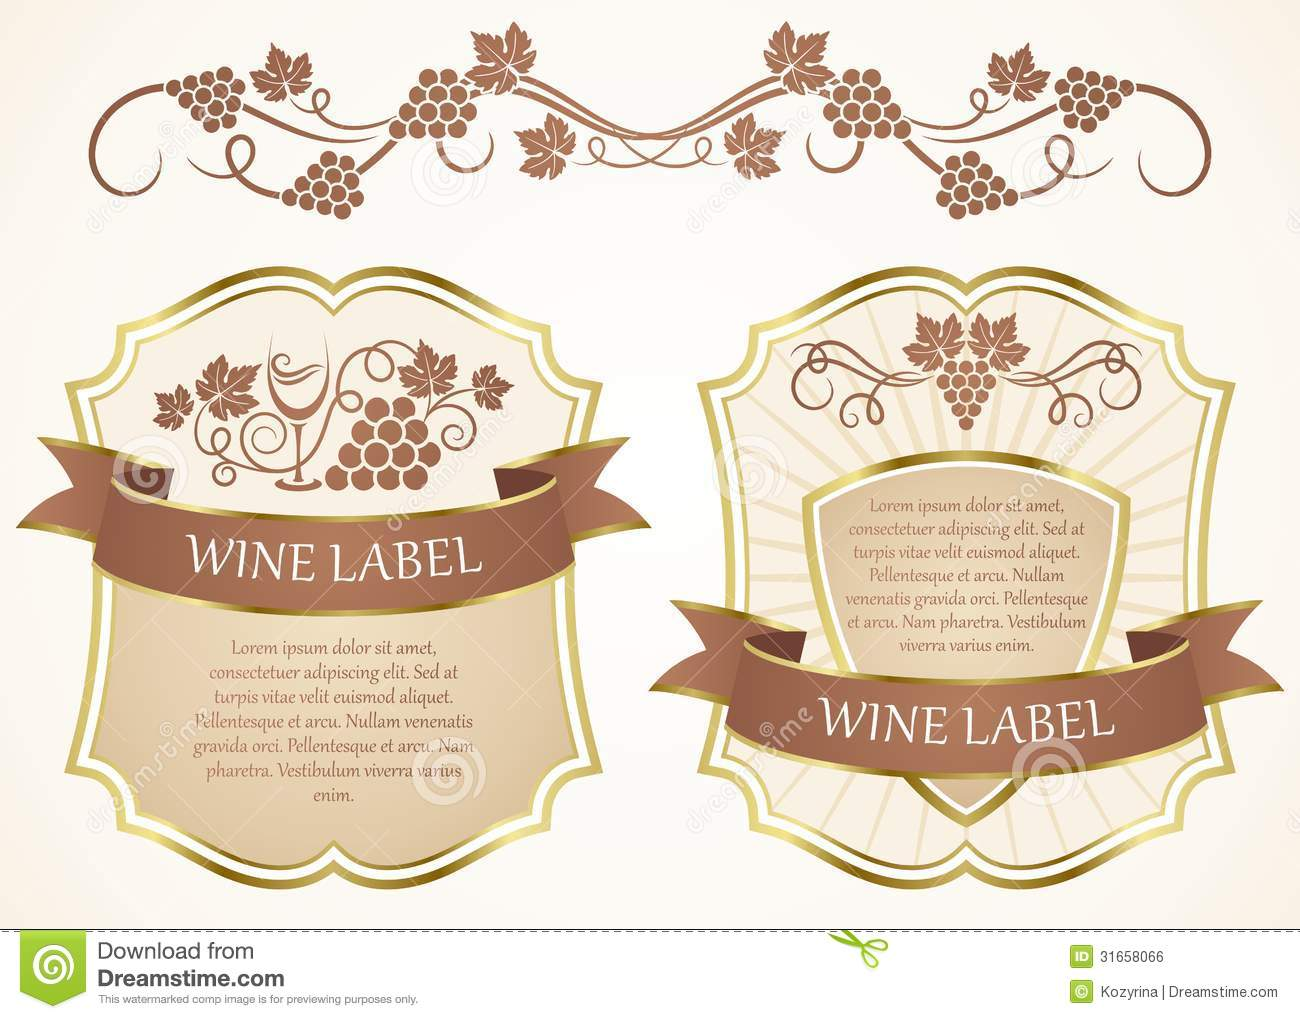 Wine Label Photography Image 34298672 – Wine Bottle Labels Template Free